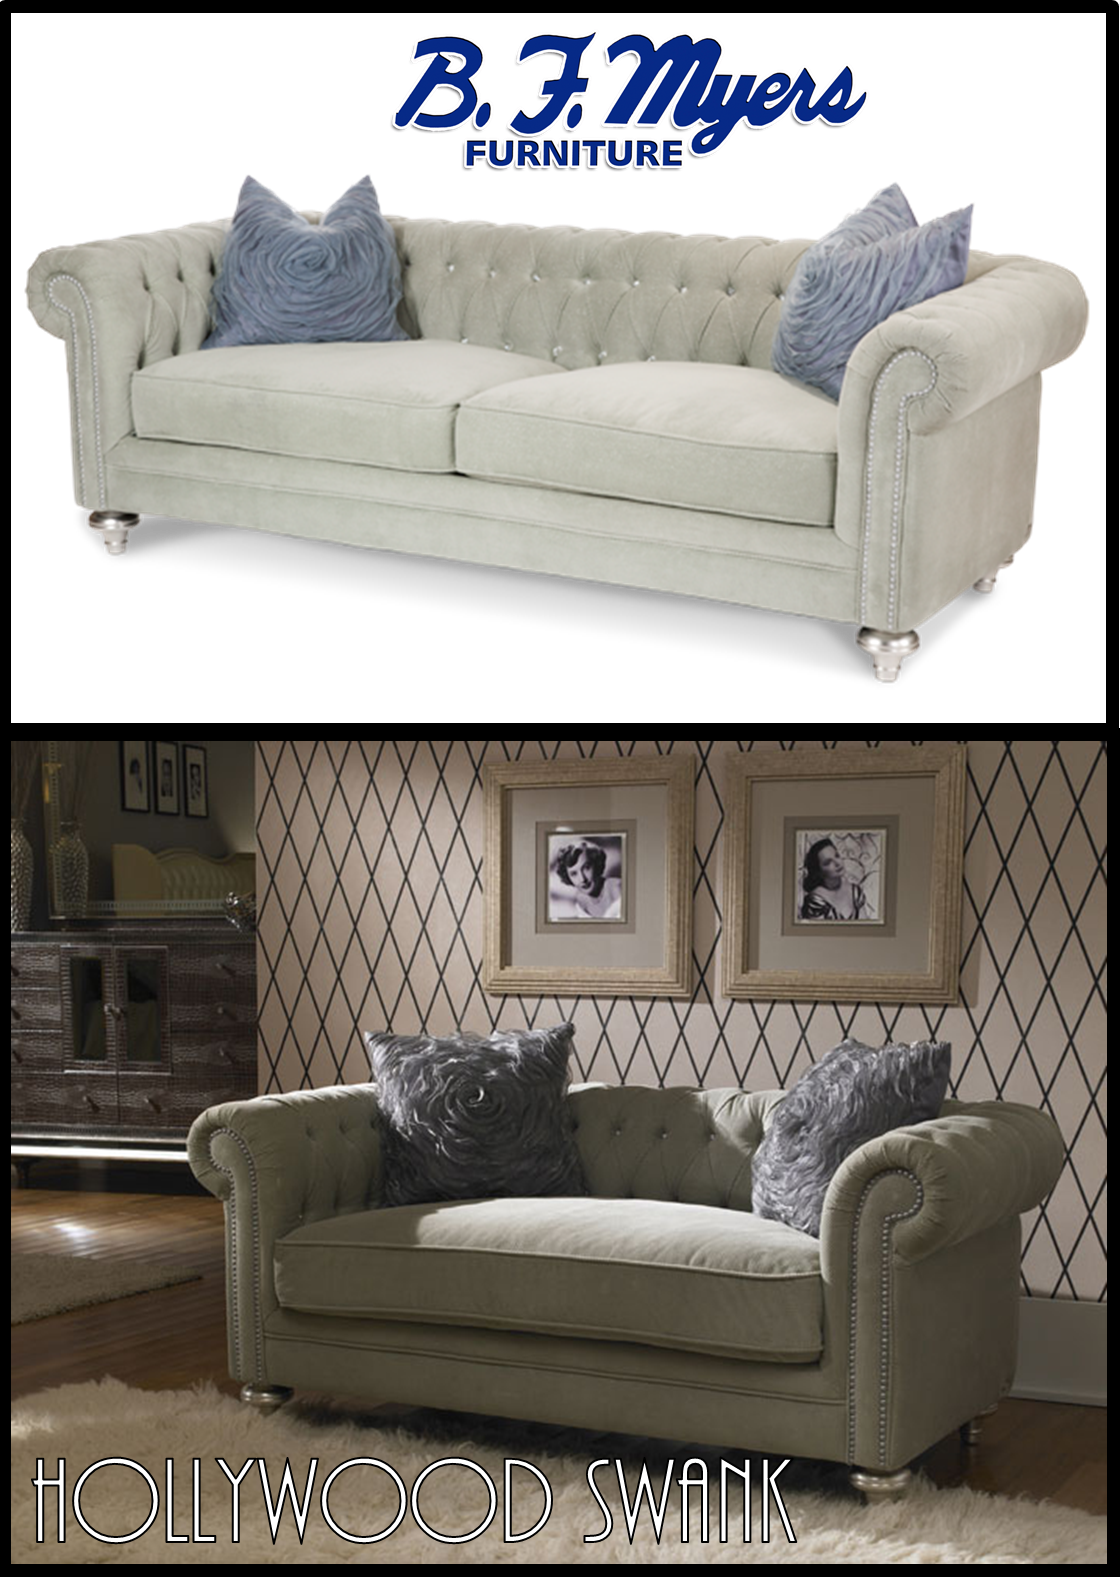 Etonnant #HollywoodSwank Living Room Love Seat Platinum AVAILABLE AT B.F. MYERS  FURNITURE In Goodlettsville,